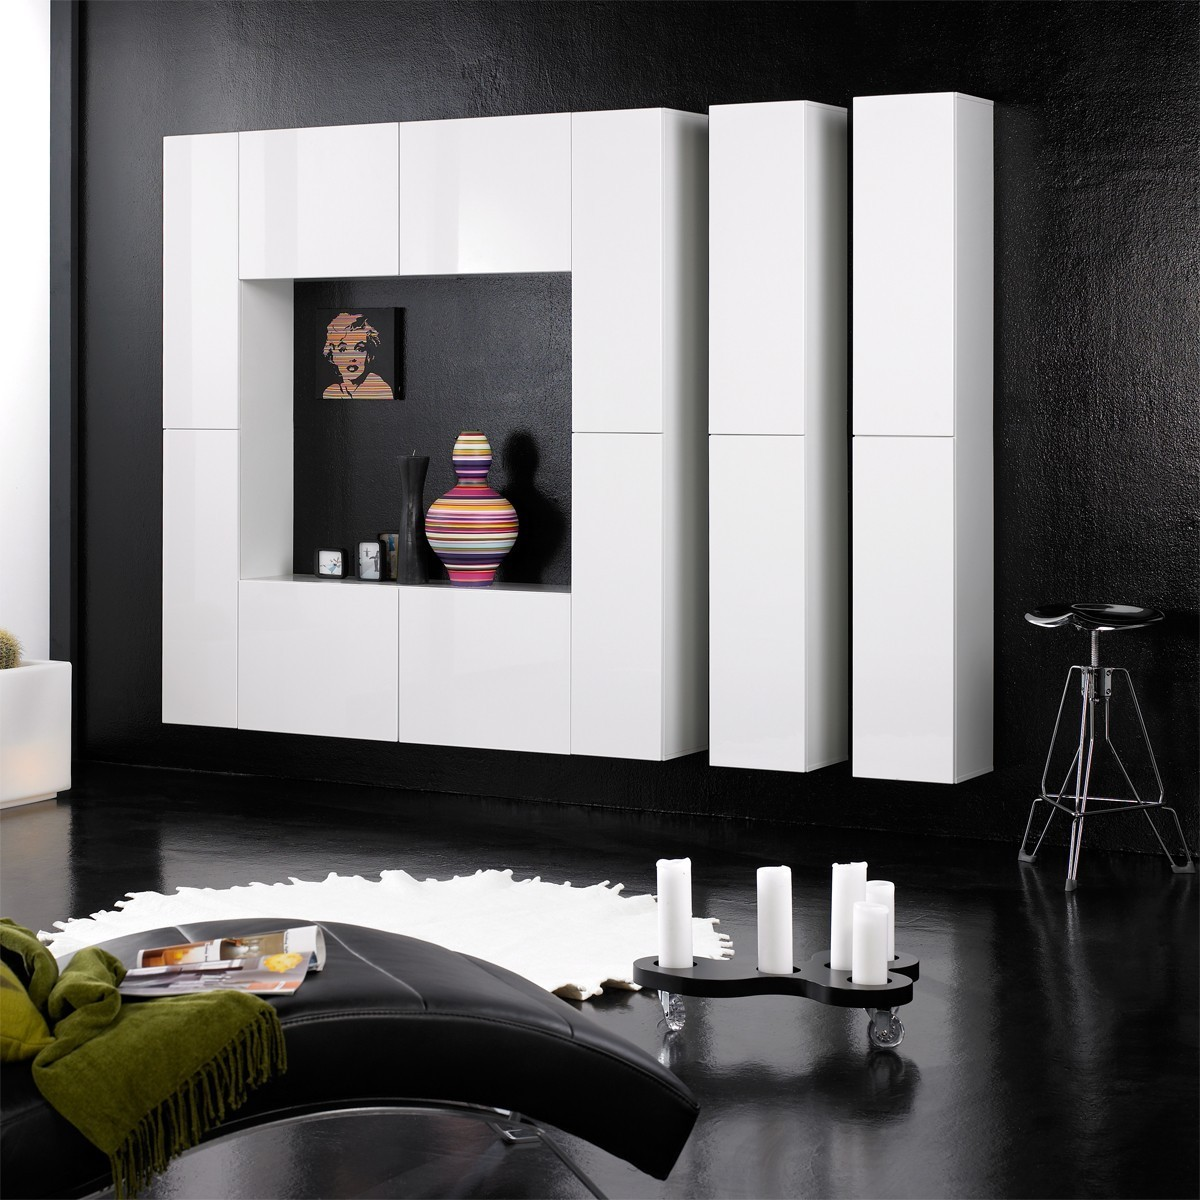 design wohnwand schrankwand anbauwand monaco wei hochglanz modern viel platz ebay. Black Bedroom Furniture Sets. Home Design Ideas